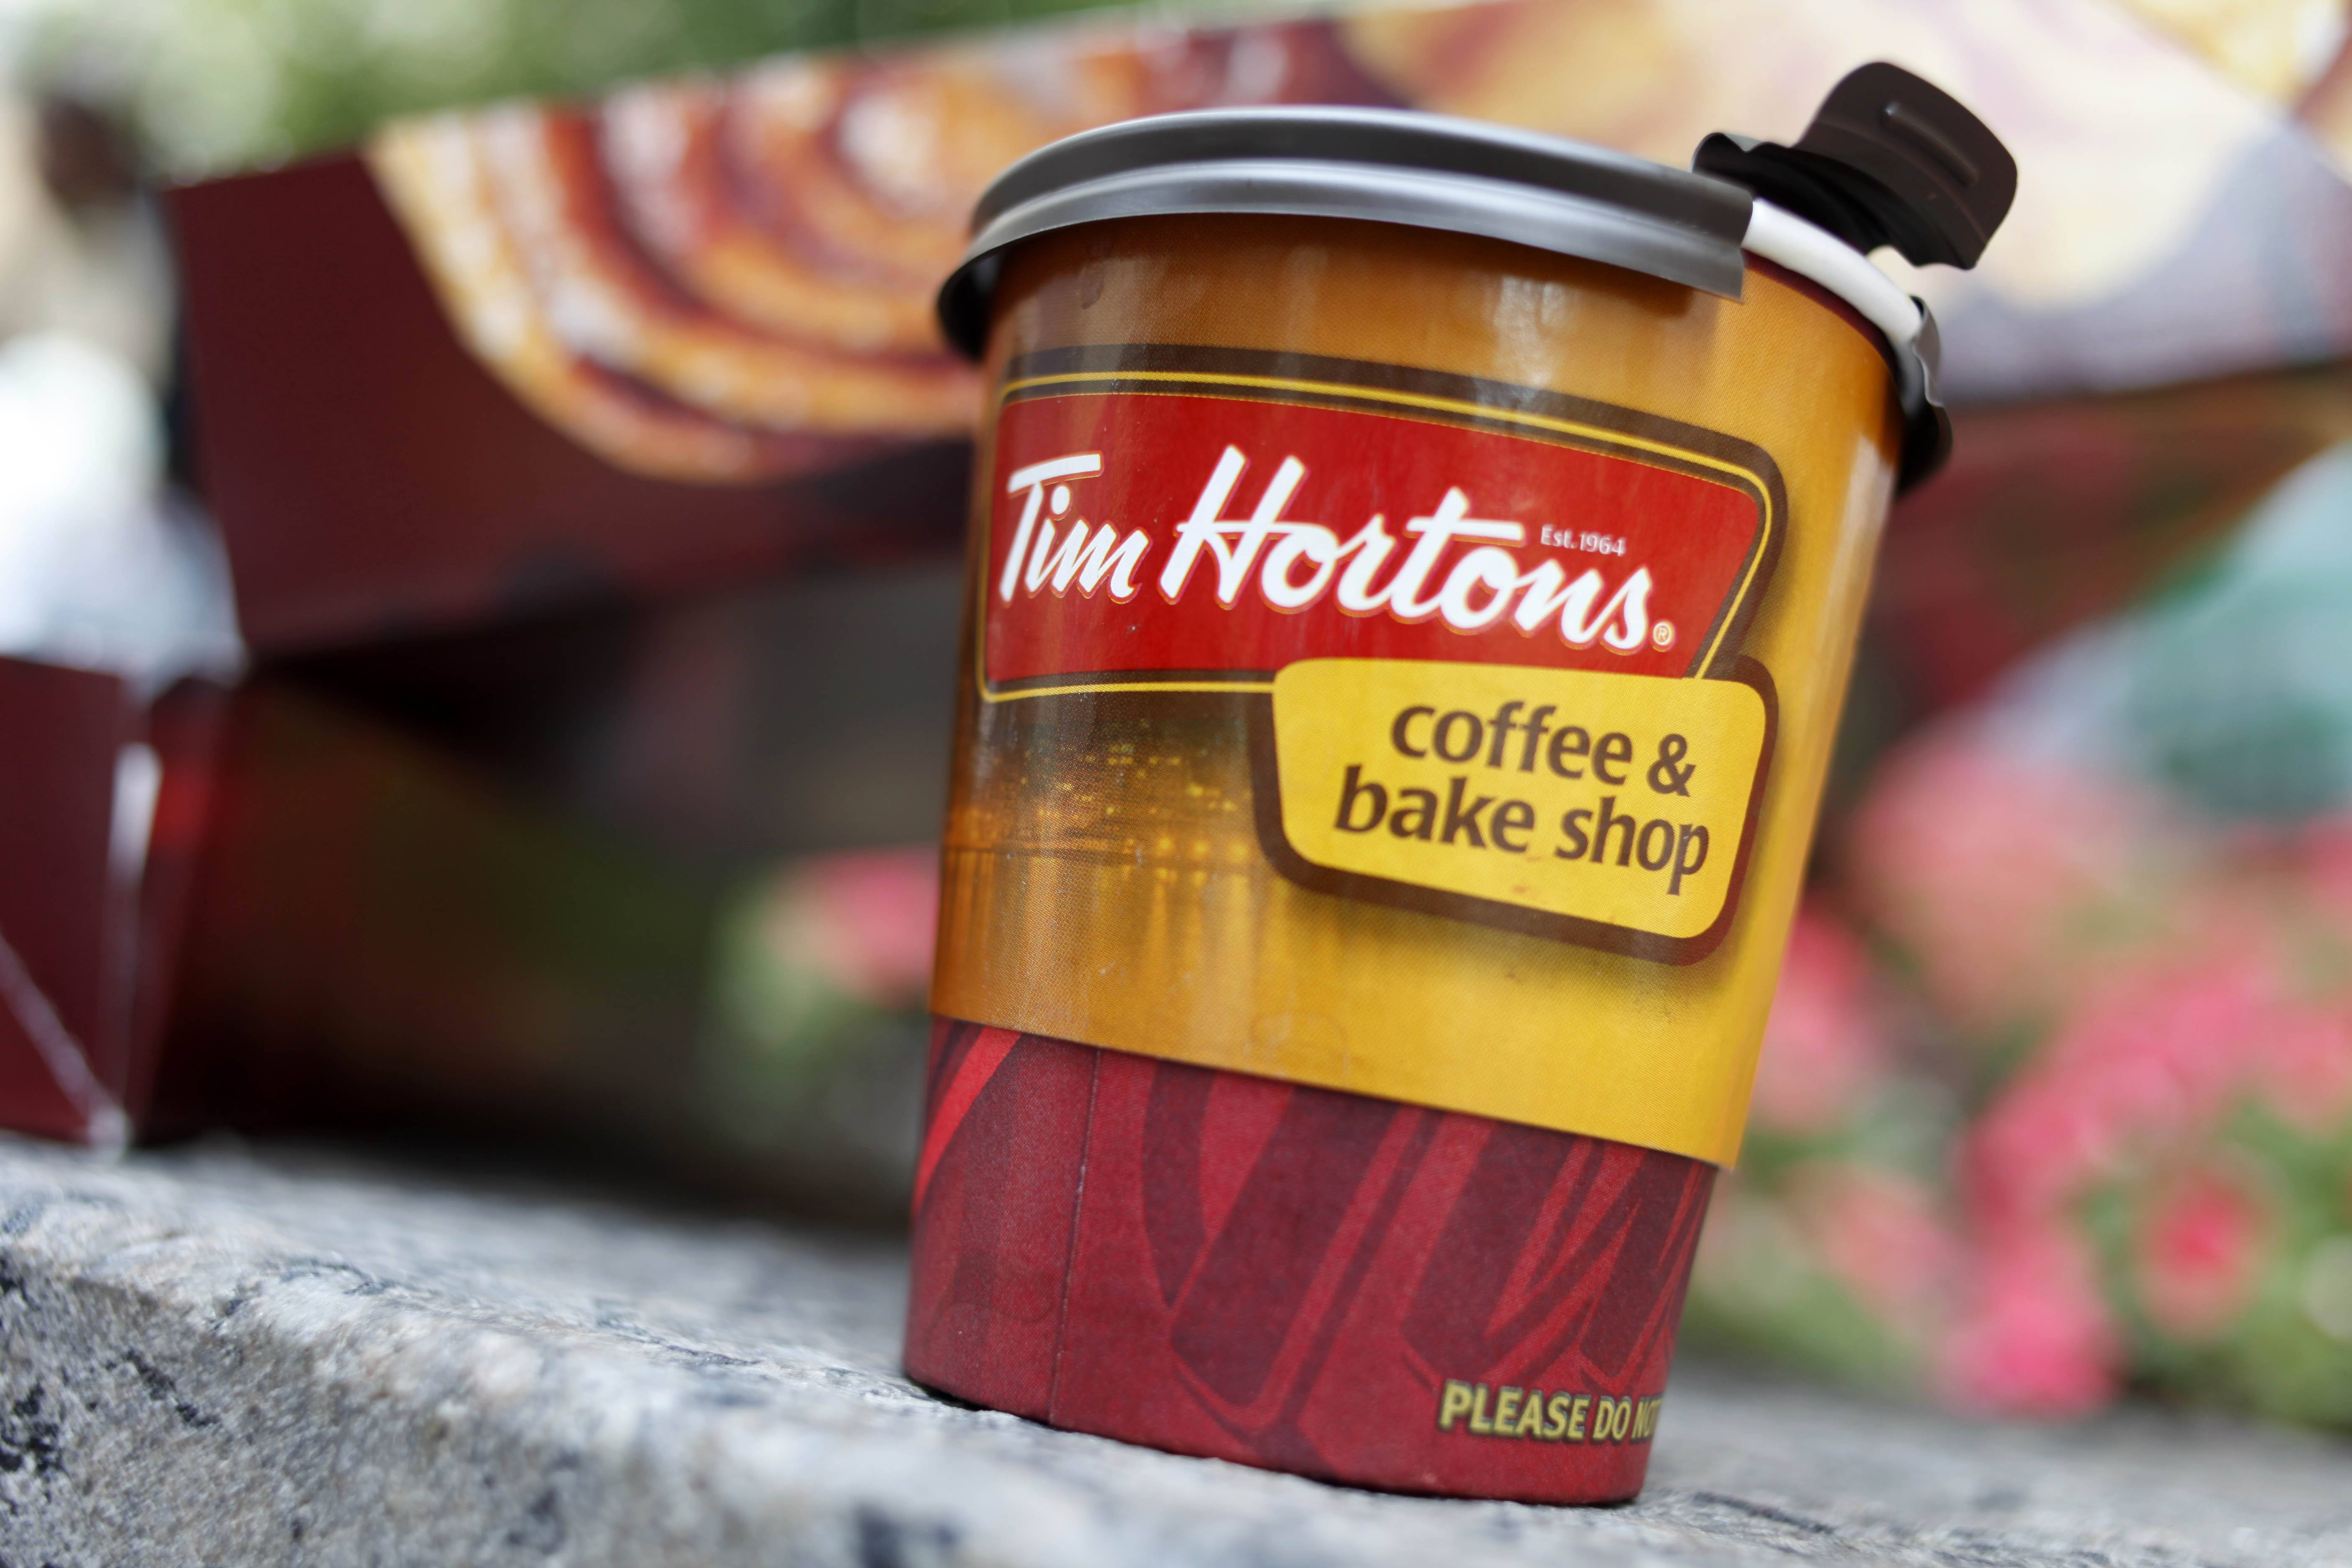 Burger King is in talks to buy Tim Hortons in hopes of creating a new, publicly traded company with its headquarters in Canada.